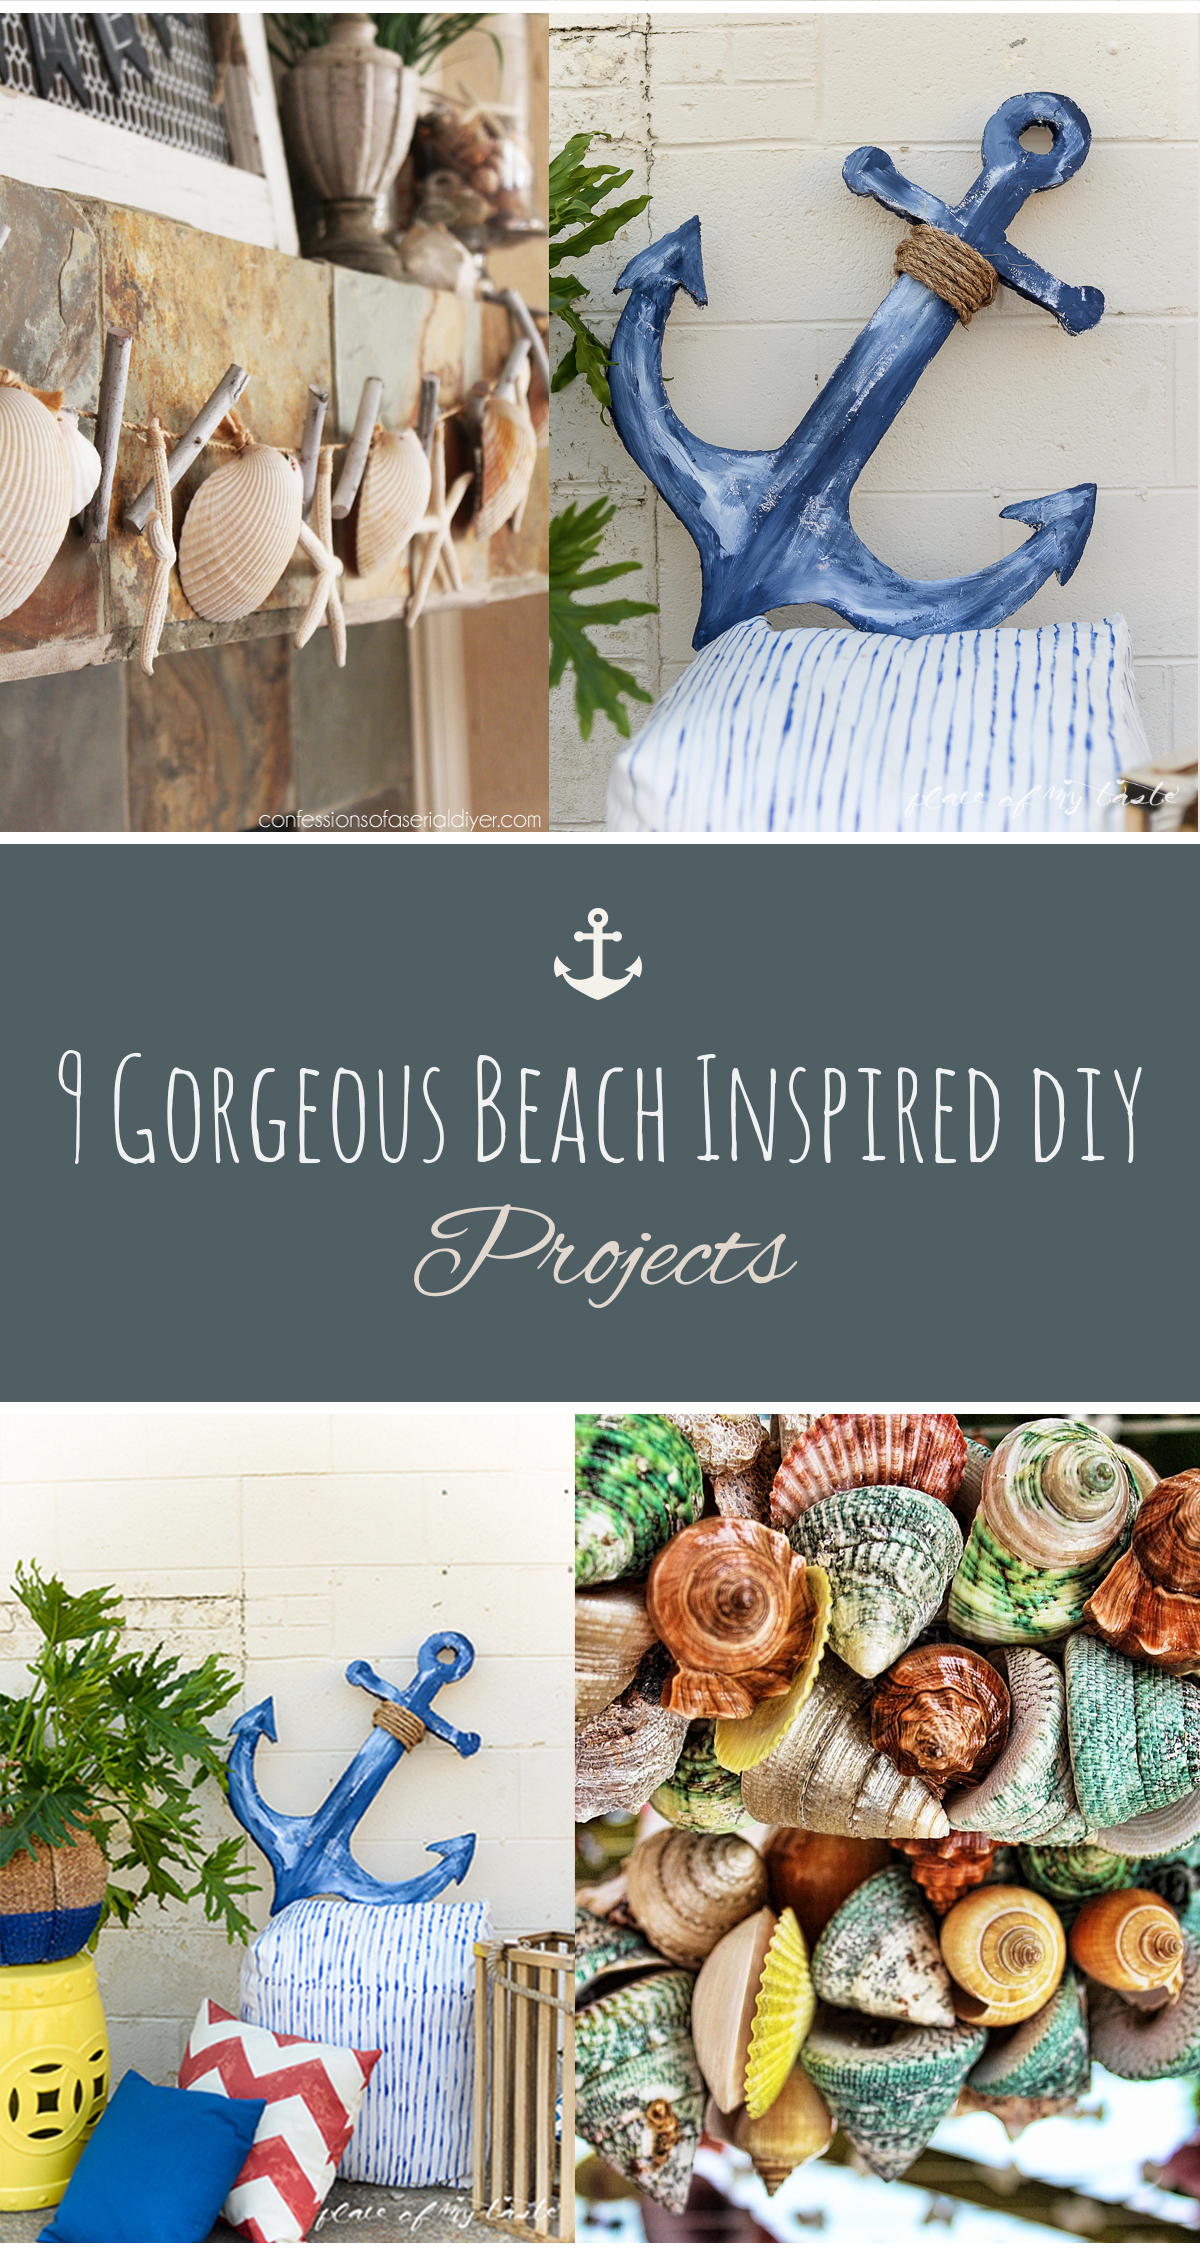 pin-9-gorgeous-beach-inspired-diy-projects